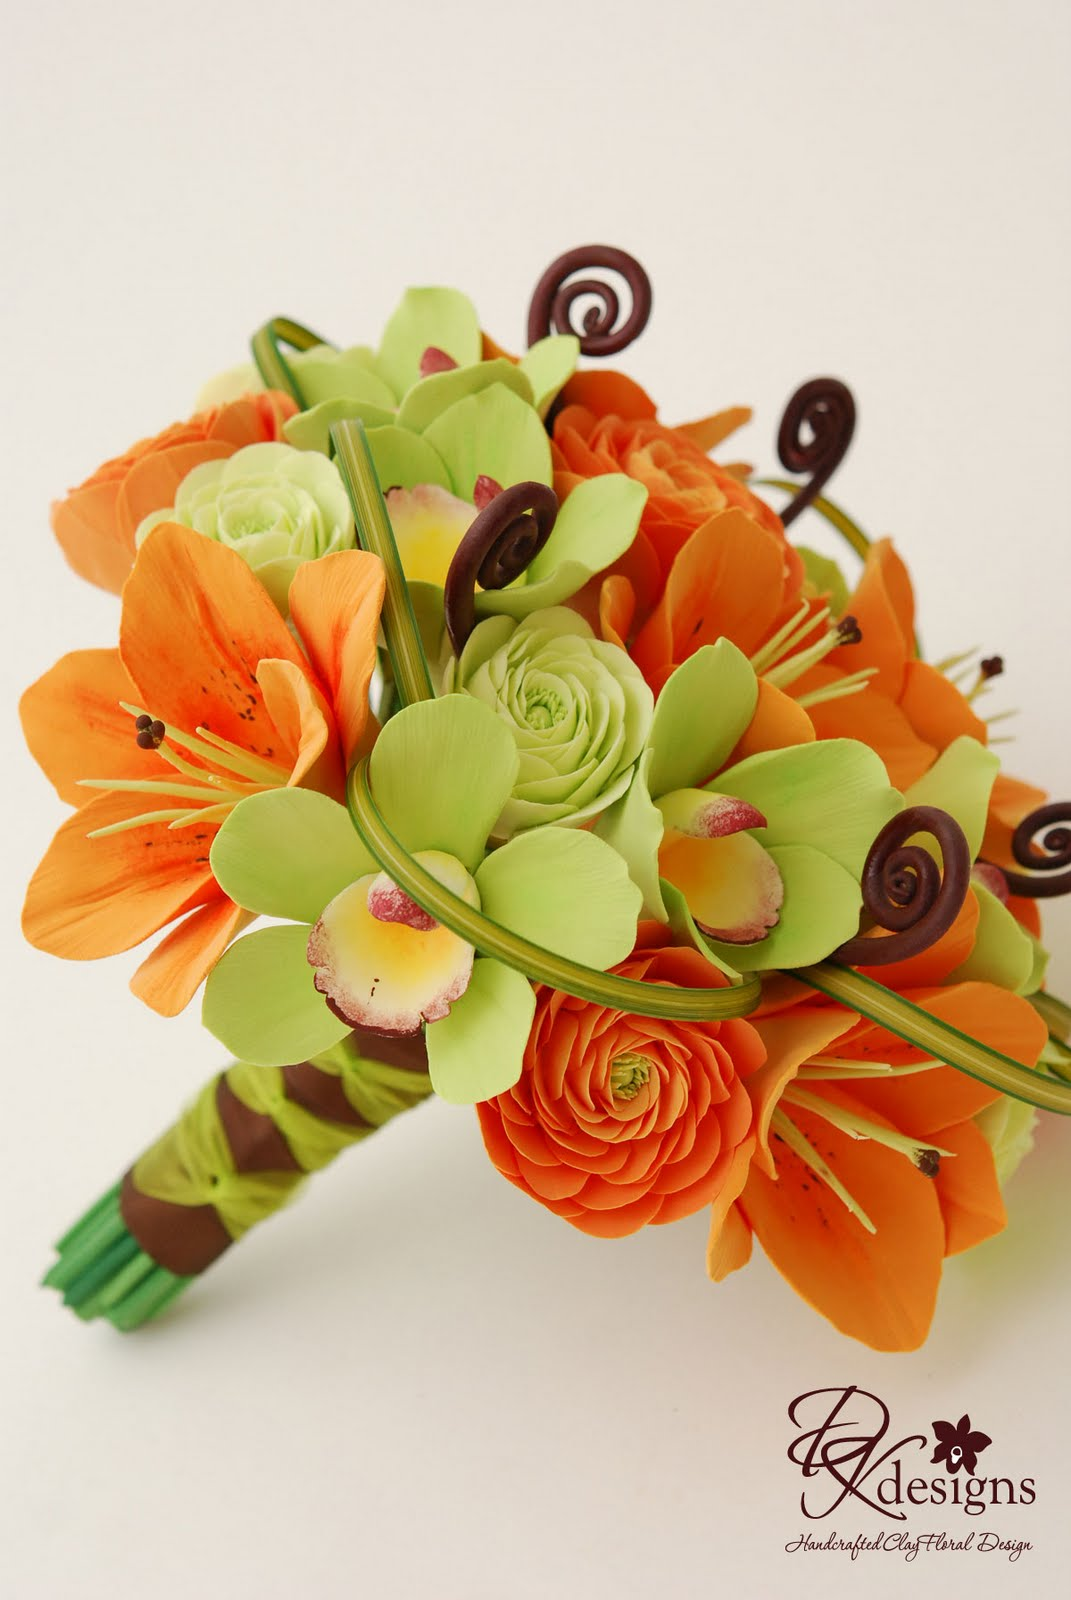 Green And Brown Living Room Decor: DK Designs: Orange, Green And Brown Bridal Bouquet